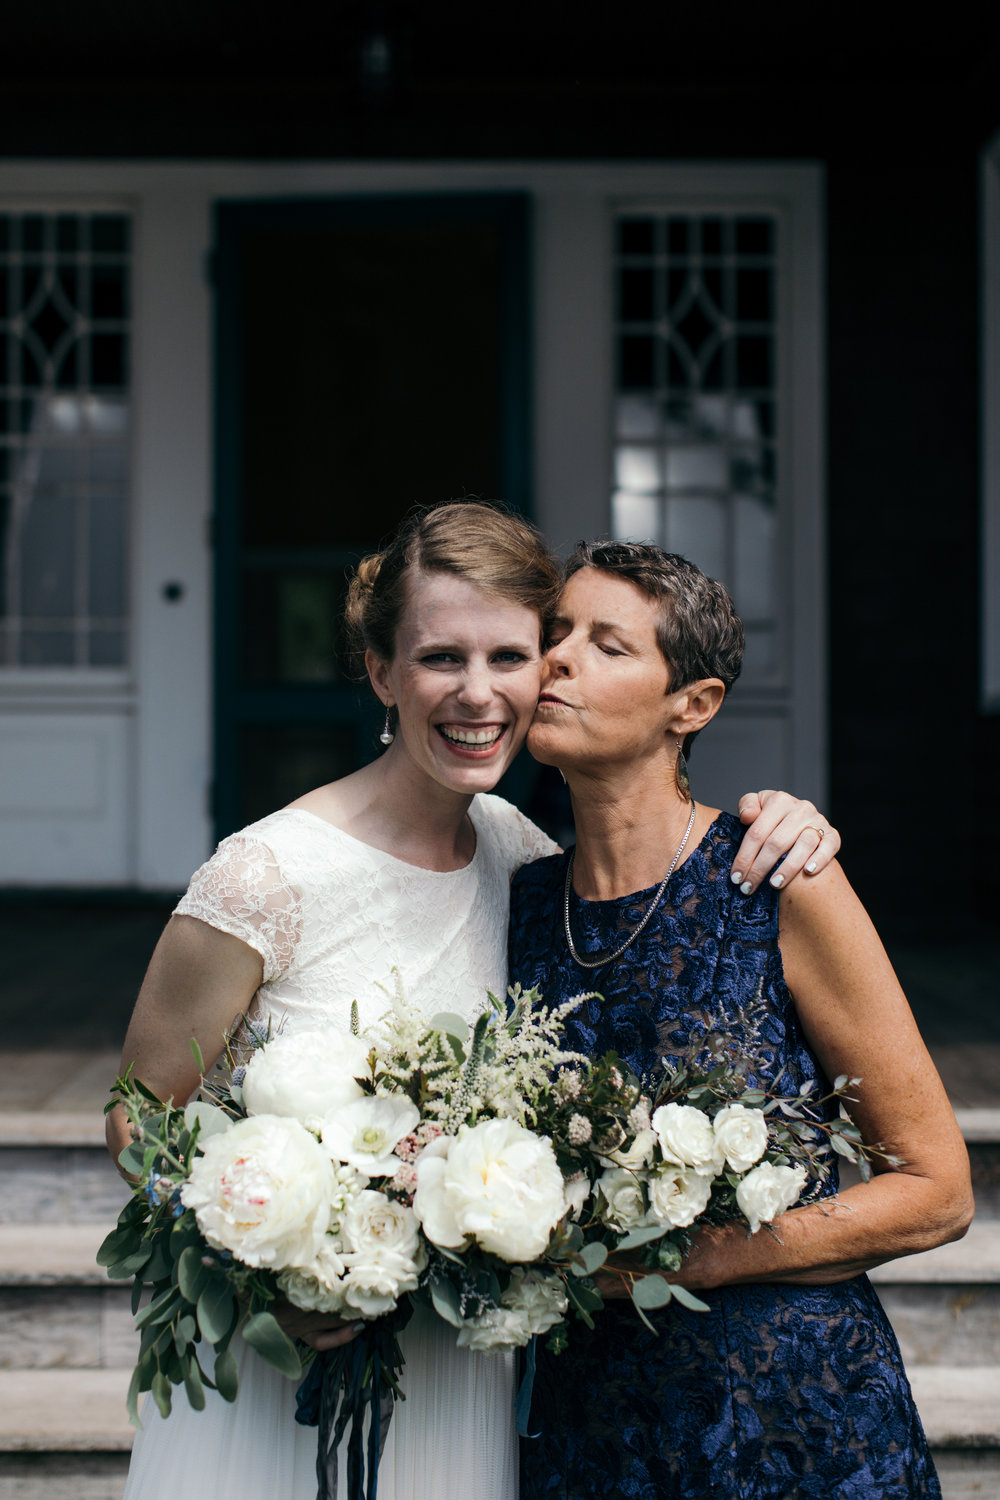 Watershed-Floral-Maine-Island-Wedding-Bridal-Mother-Of-The-Bride-Bouquet.jpg